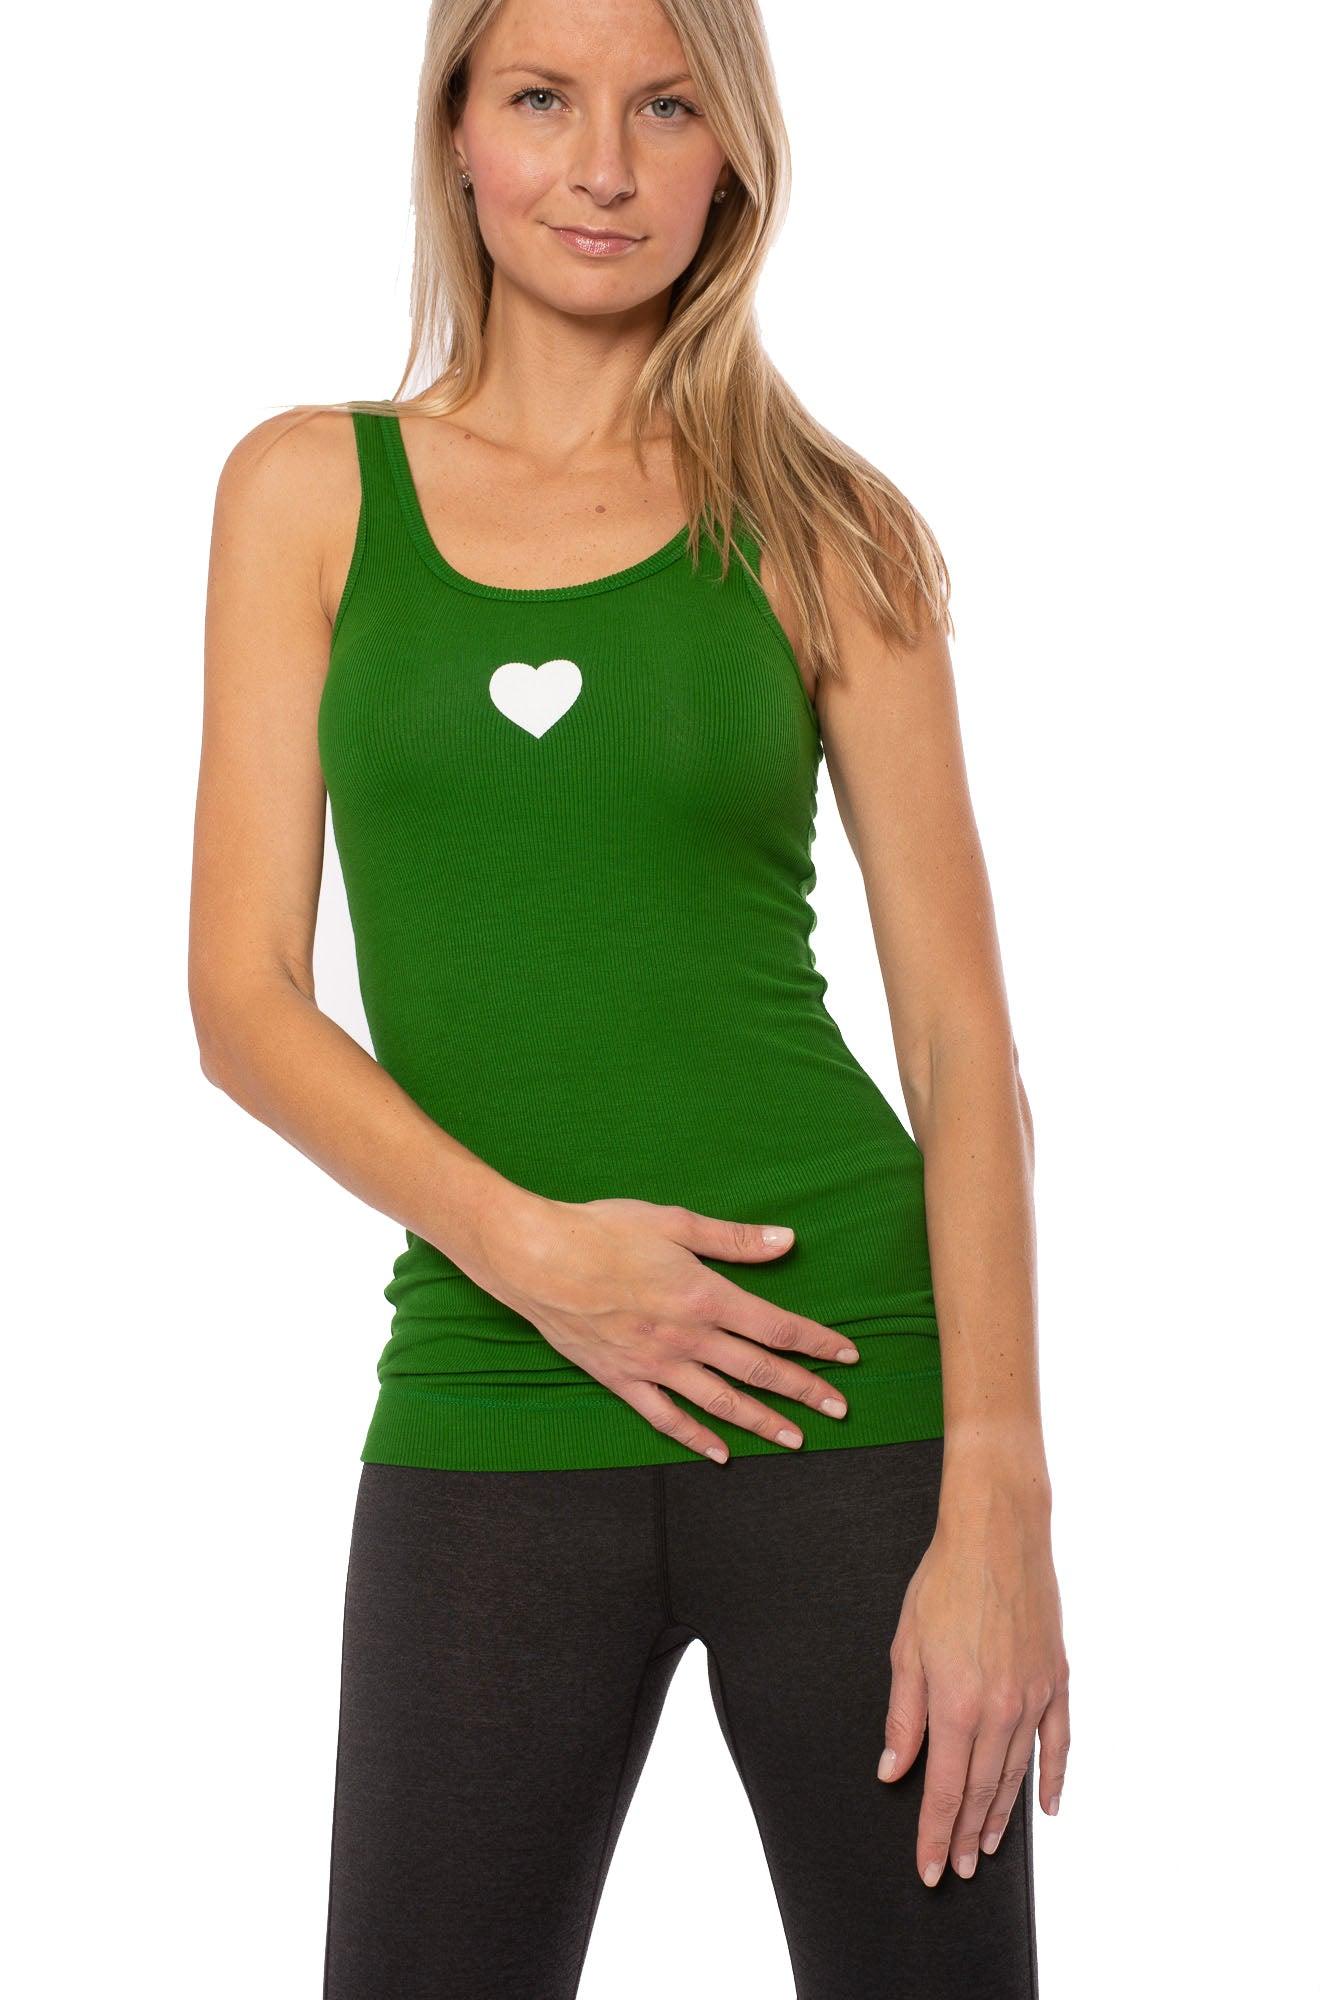 Skinny Tnk W Sml Heart (Style RR-19-711, Kelly Green/White) by Hard Tail Forever